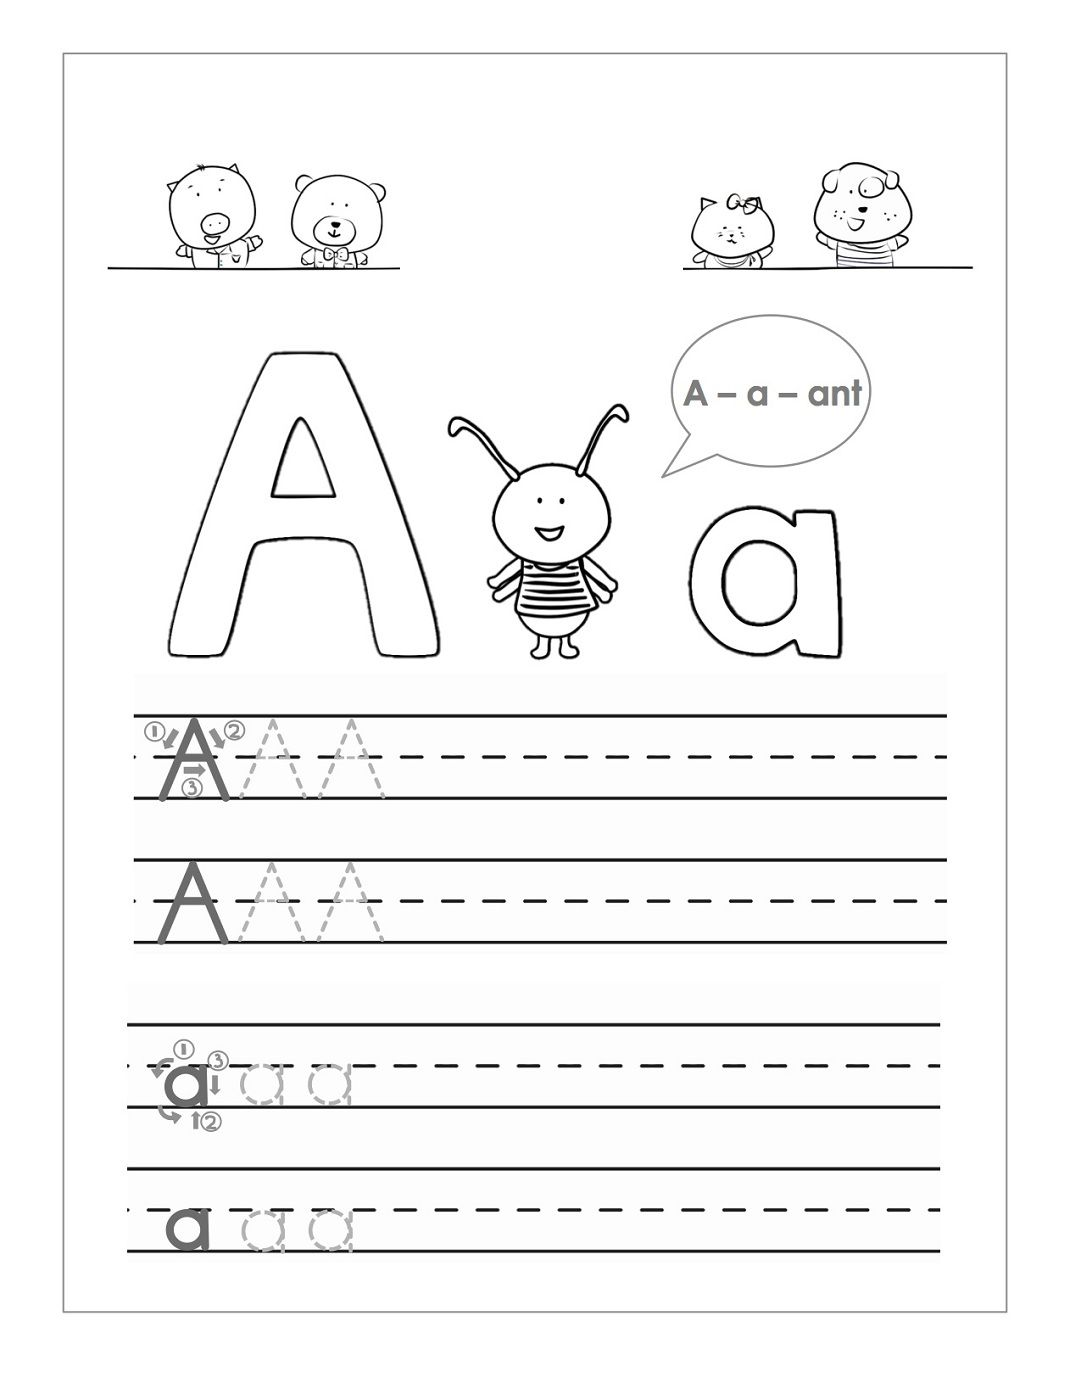 Worksheet Tracing Letter A tracing the letter a free printable activity shelter alphabet pinterest activities and ojays